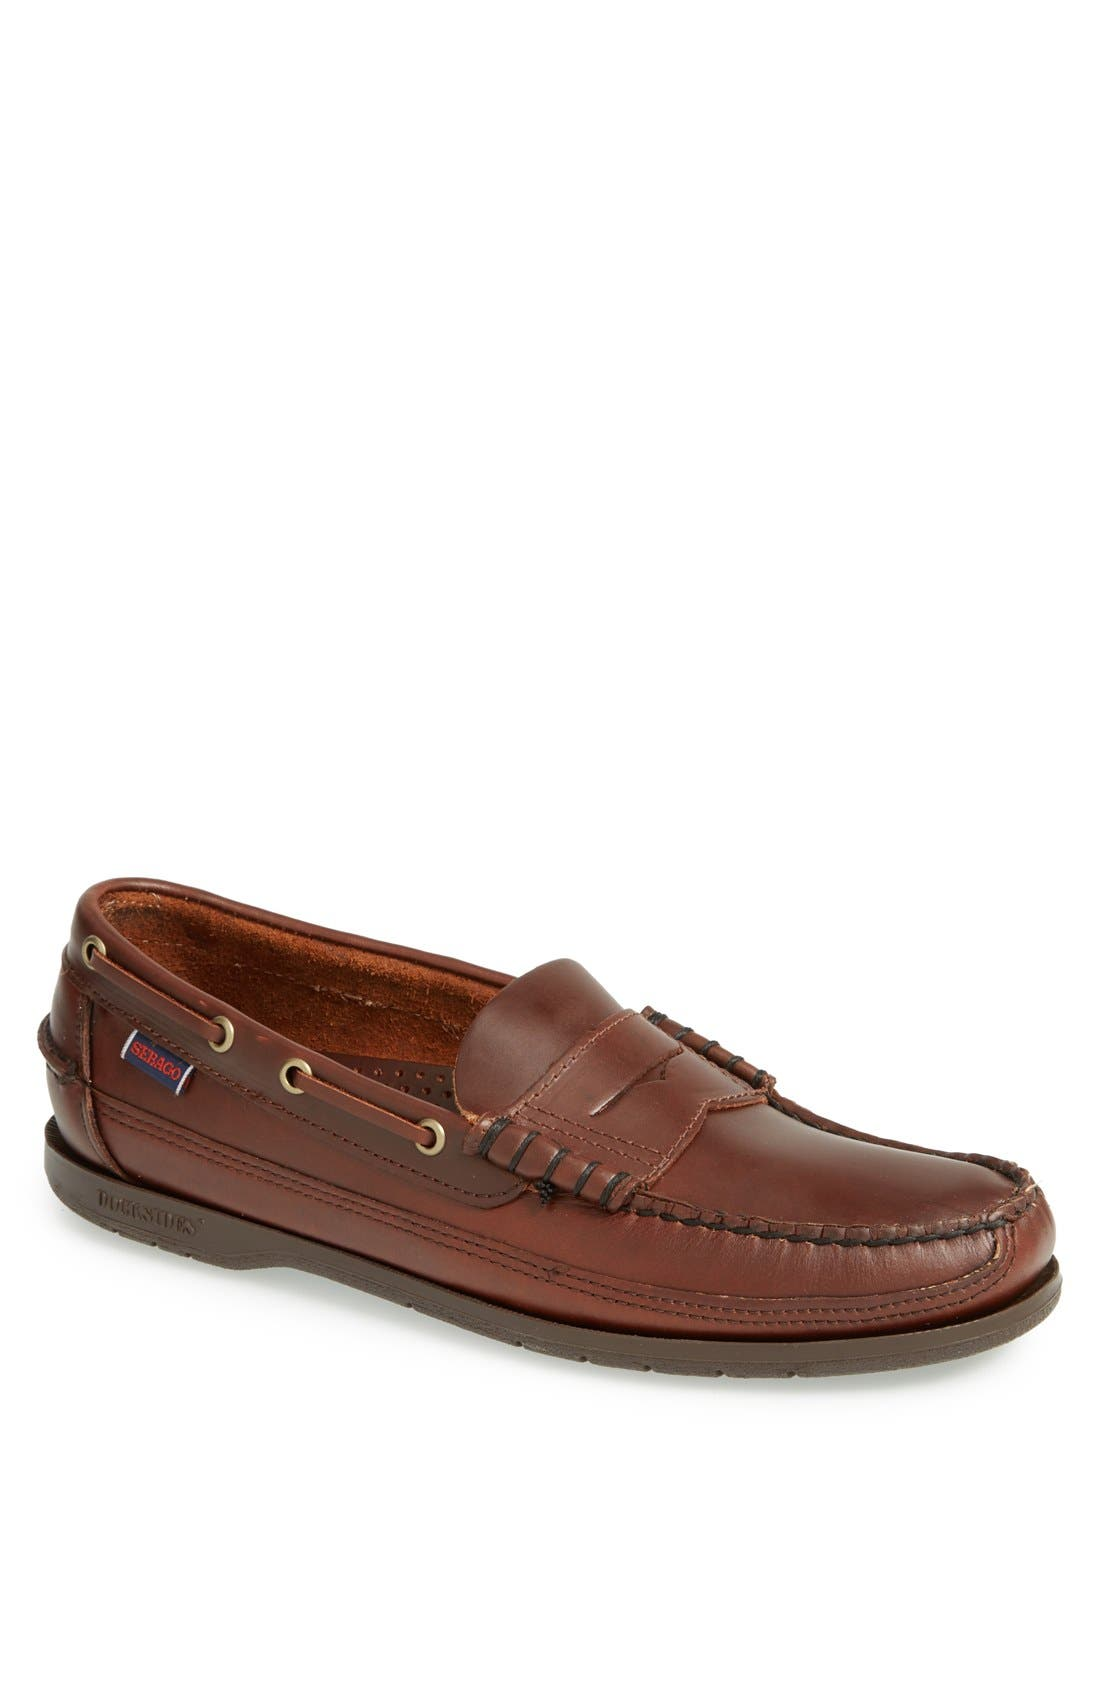 'Sloop' Penny Loafer,                             Main thumbnail 1, color,                             200